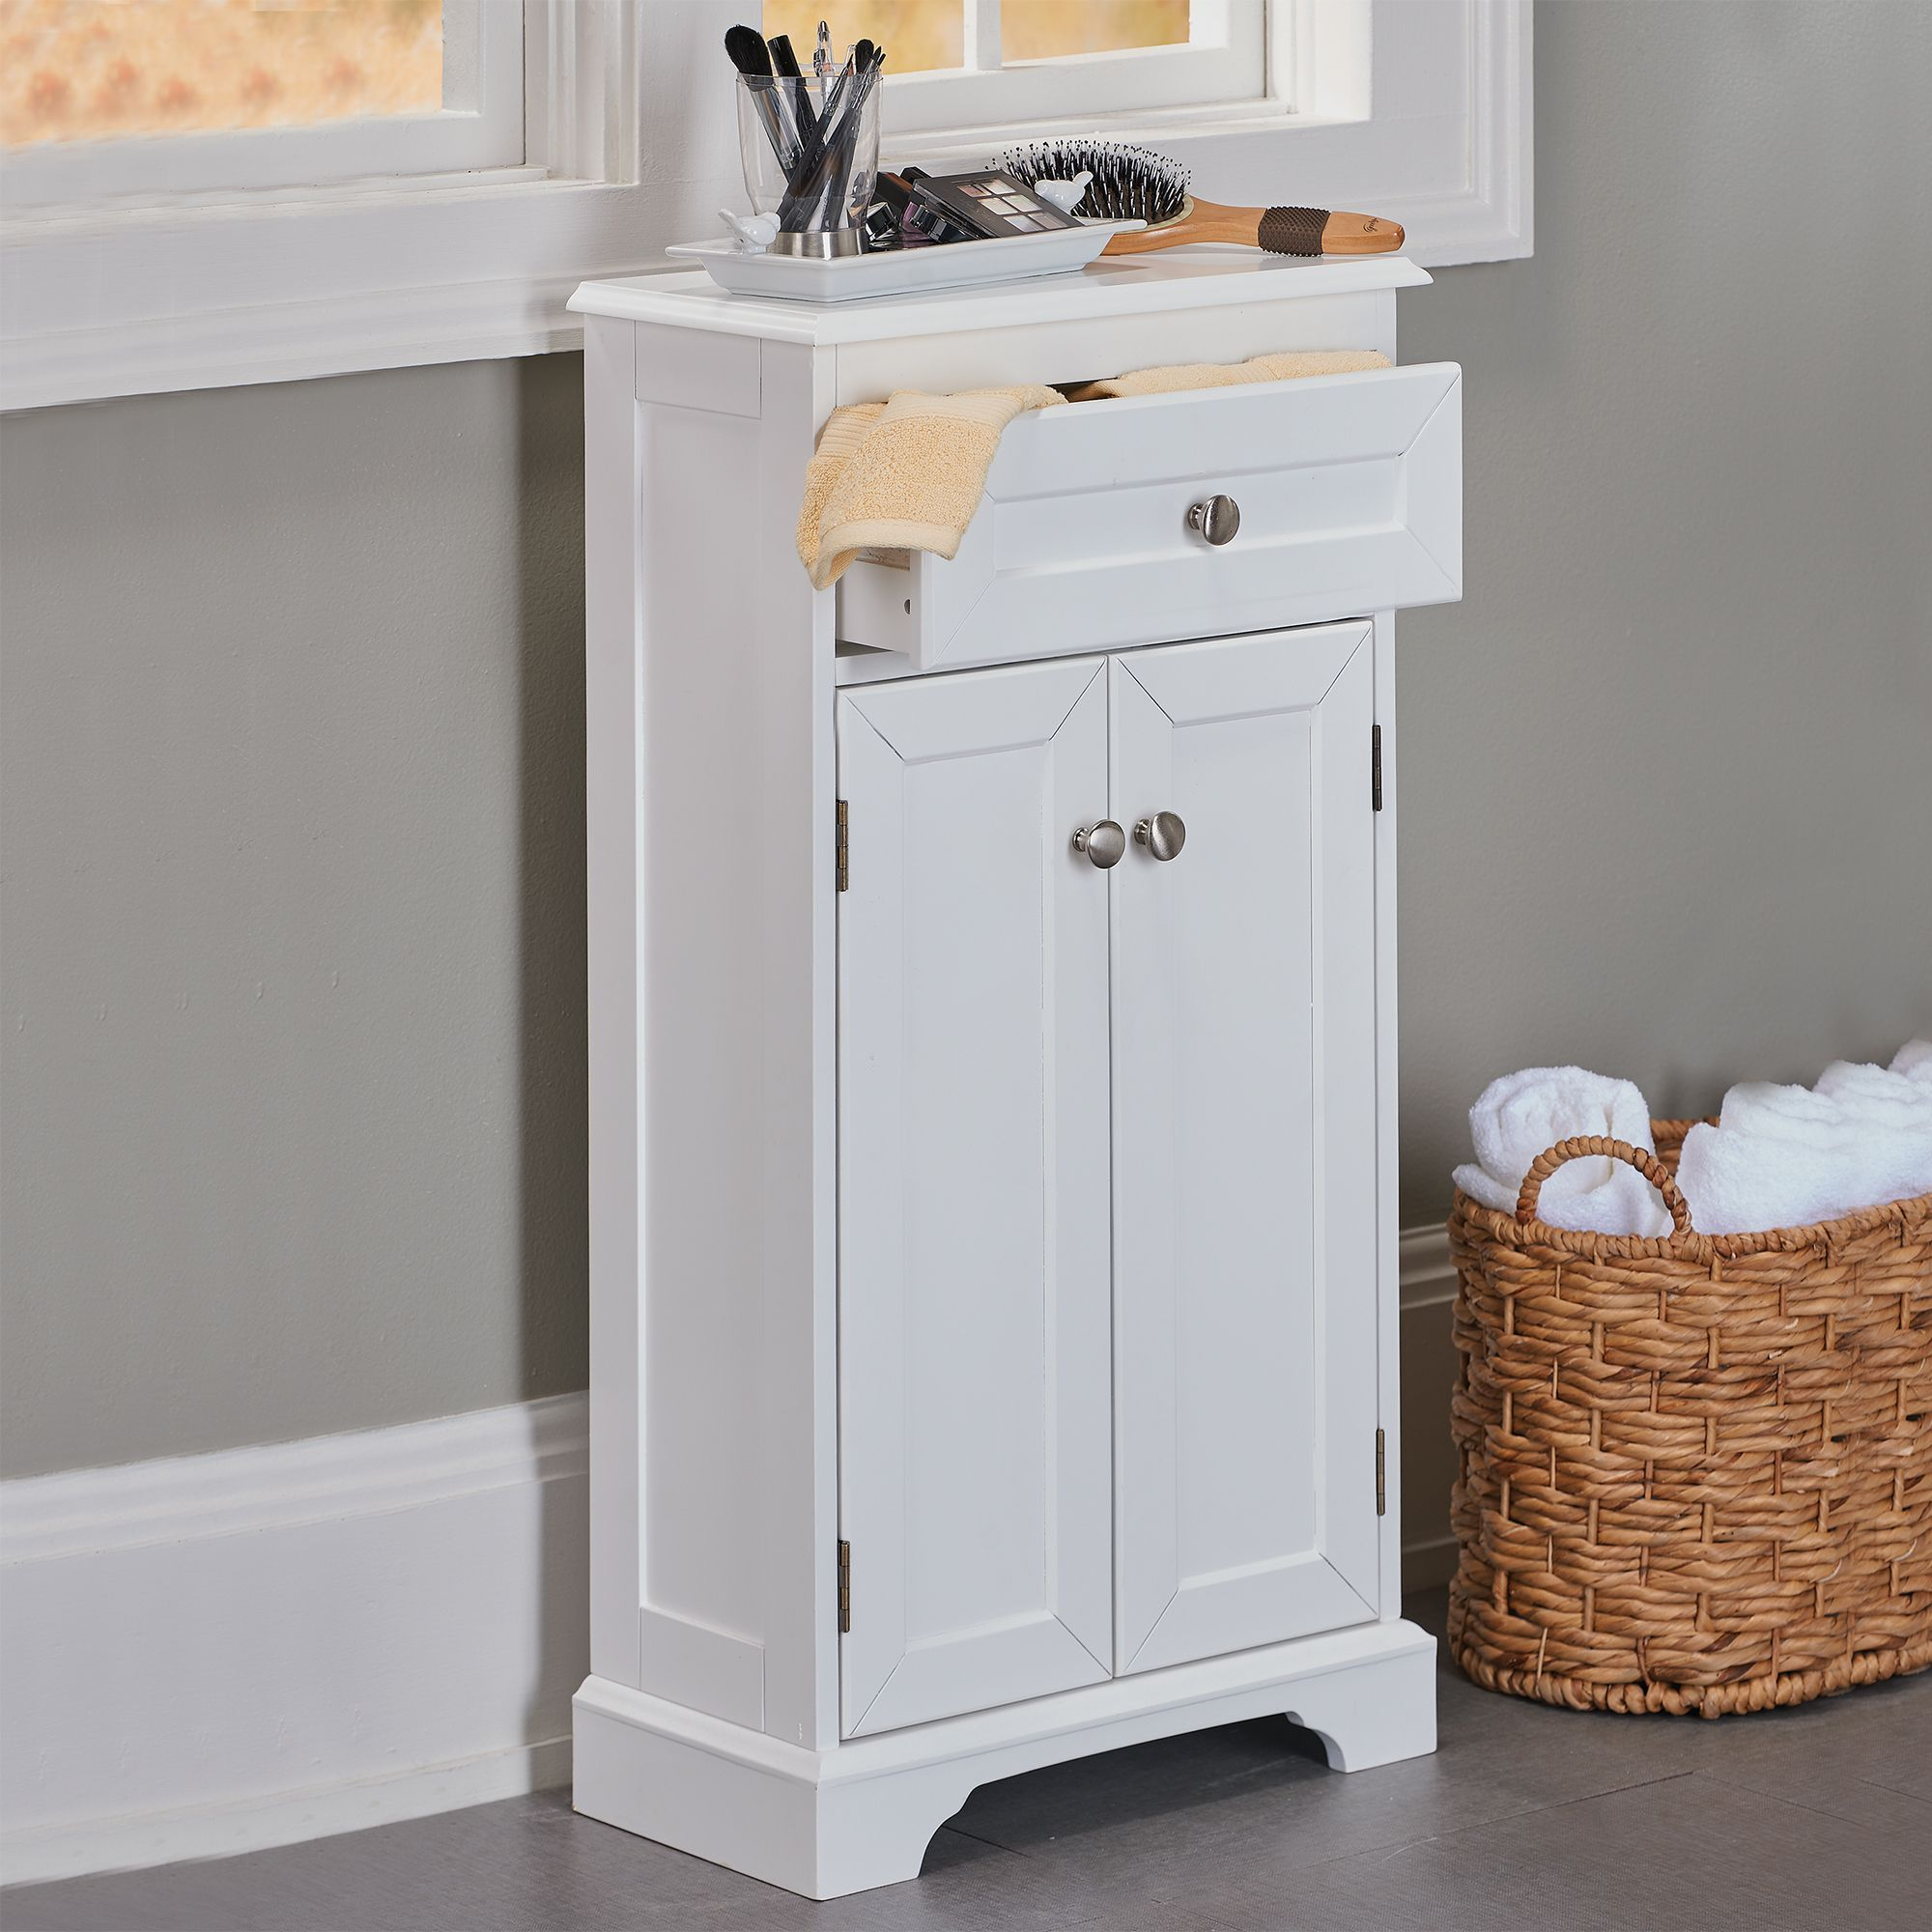 White Floor Bathroom Cabinet Weatherby White Bathroom Cabinet Its Slim Design And Small